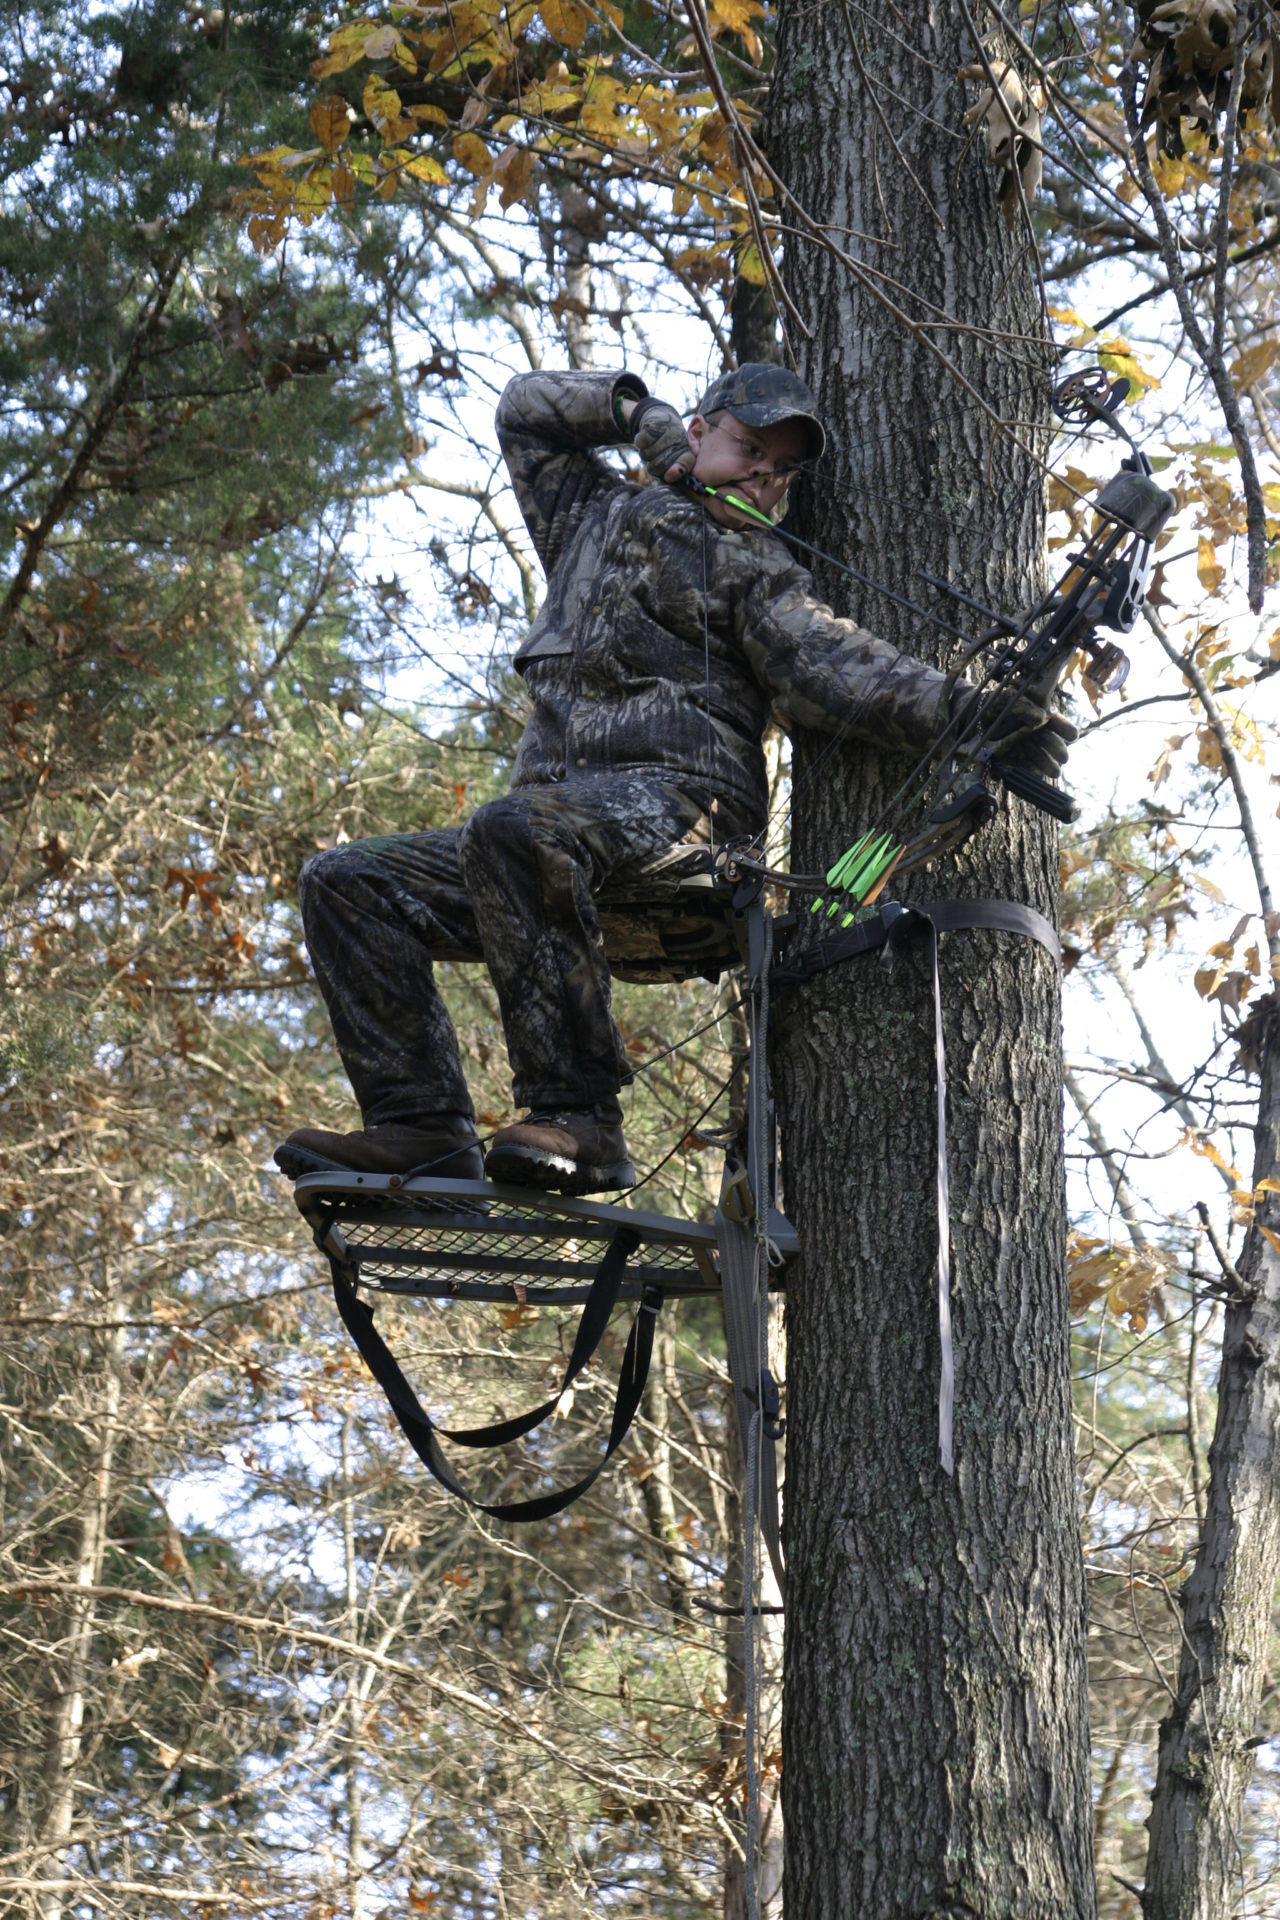 Camouflaged Bowhunter in tree stand at full draw.